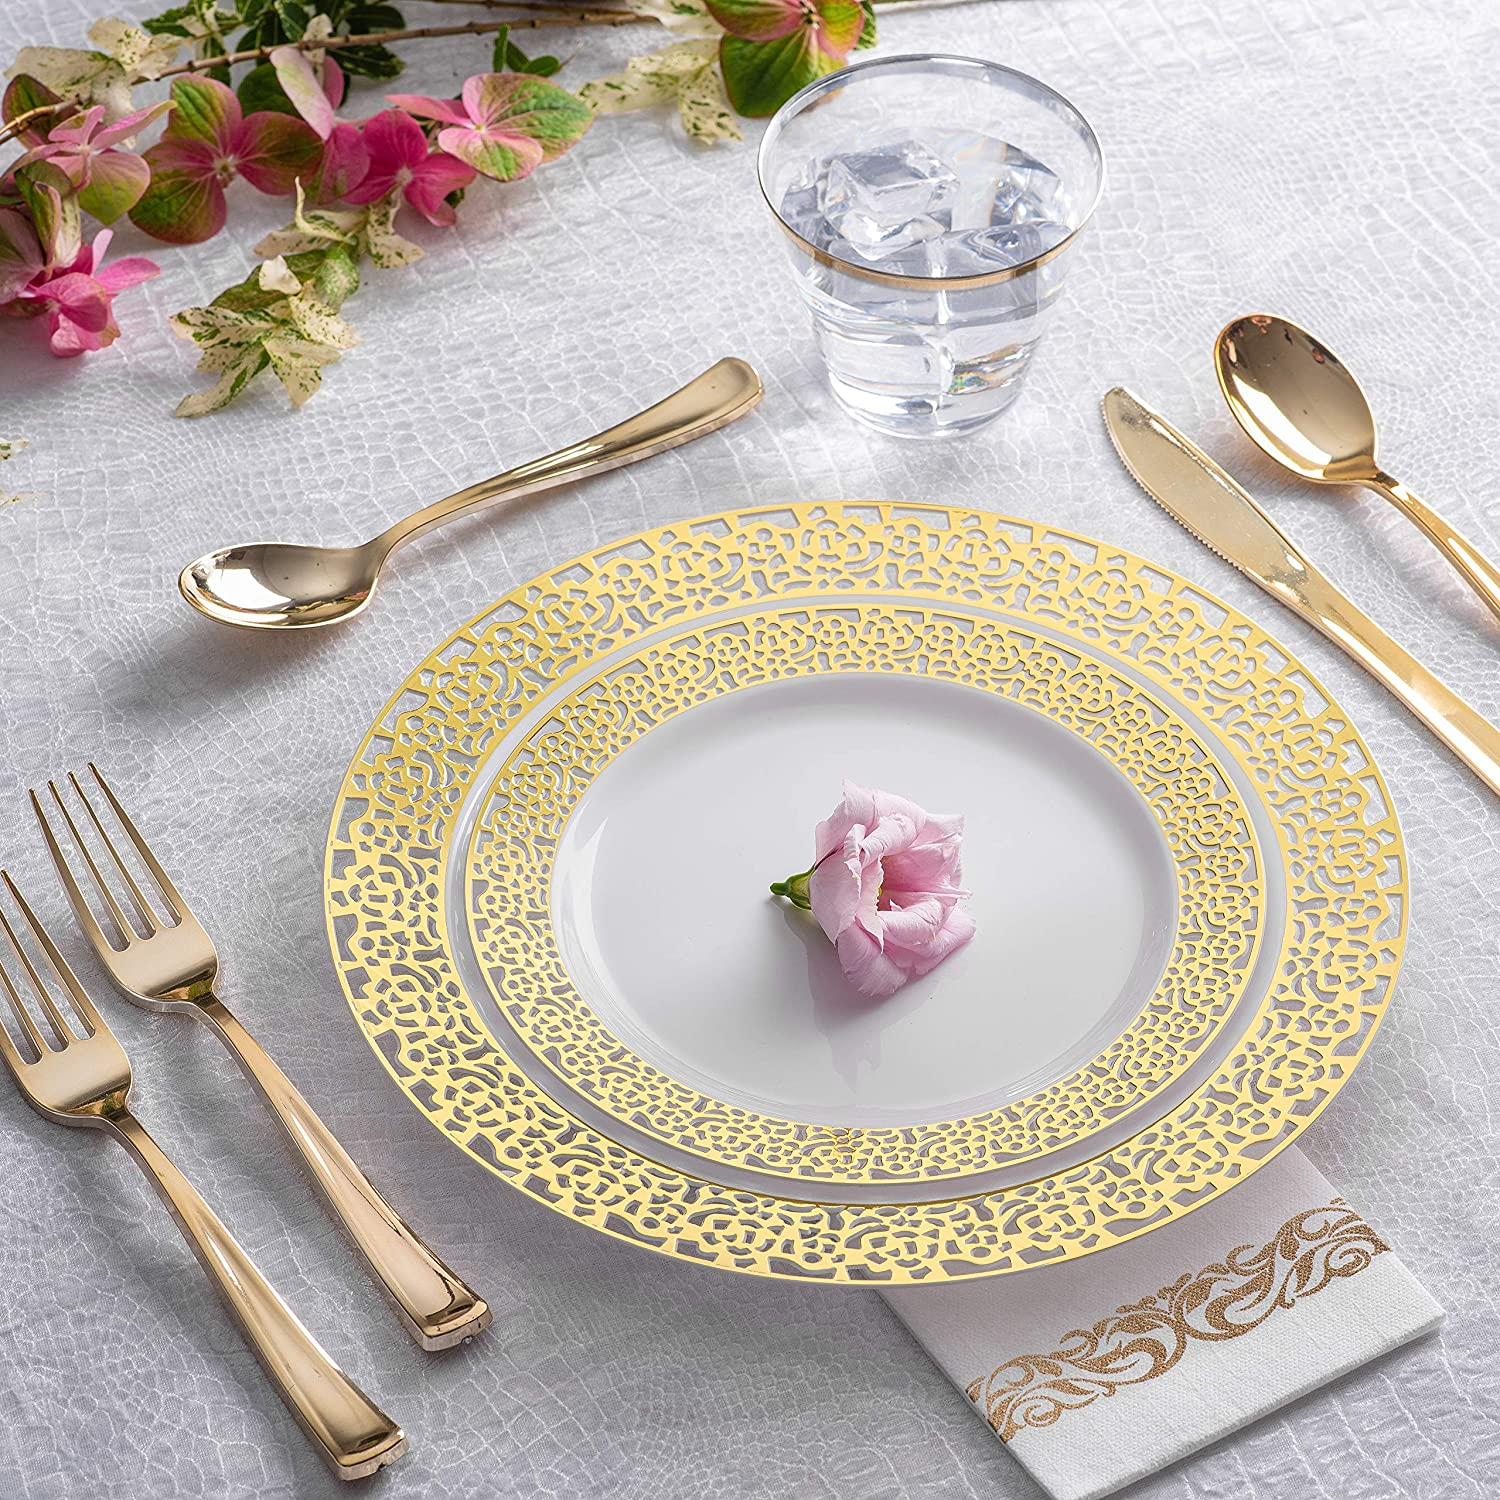 Reception Buffet 125 Piece Elegant Plastic Plates with Gold Silverware Dinner Gold Lace Gold Disposable Plates and Cutlery for Wedding Service for 25 Guests Disposable Wedding Plates